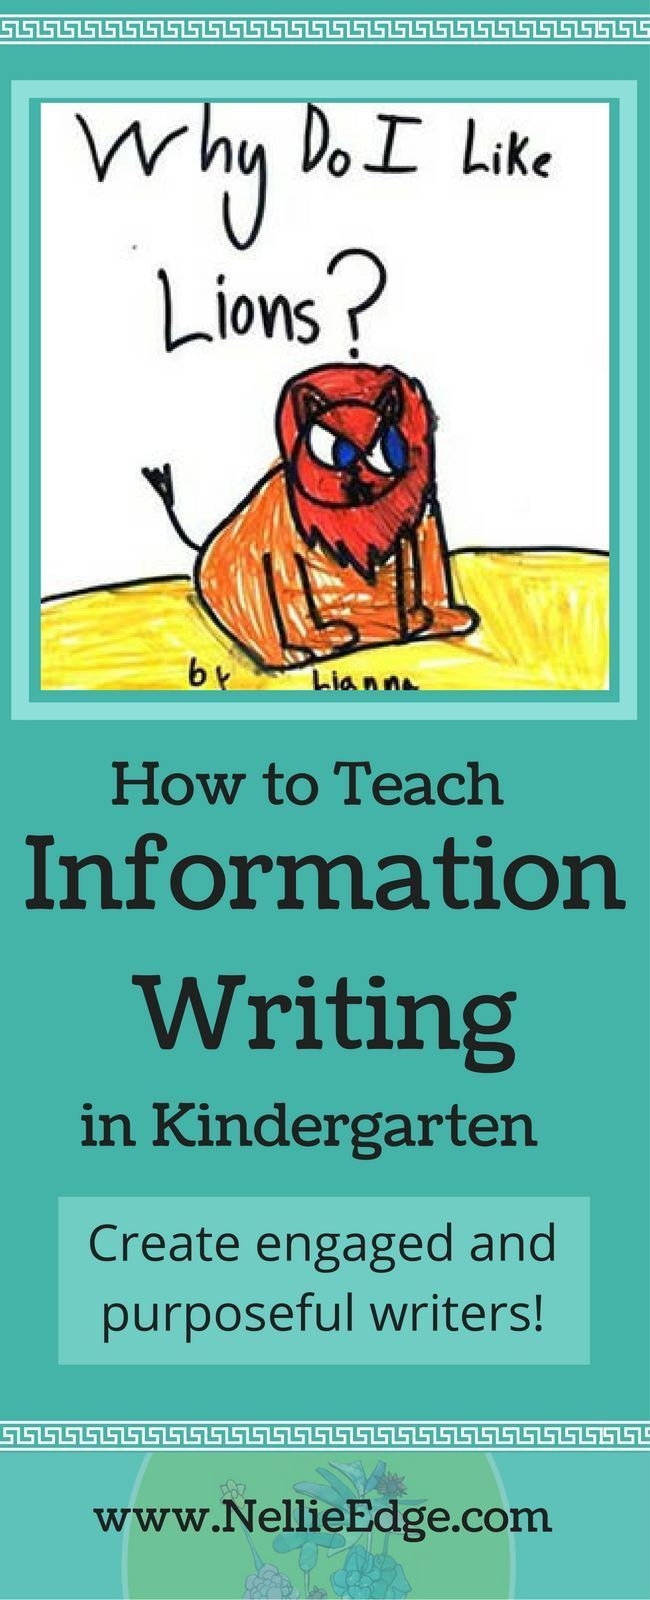 How to Teach Information Writing in Kindergarten: Create Engaged and